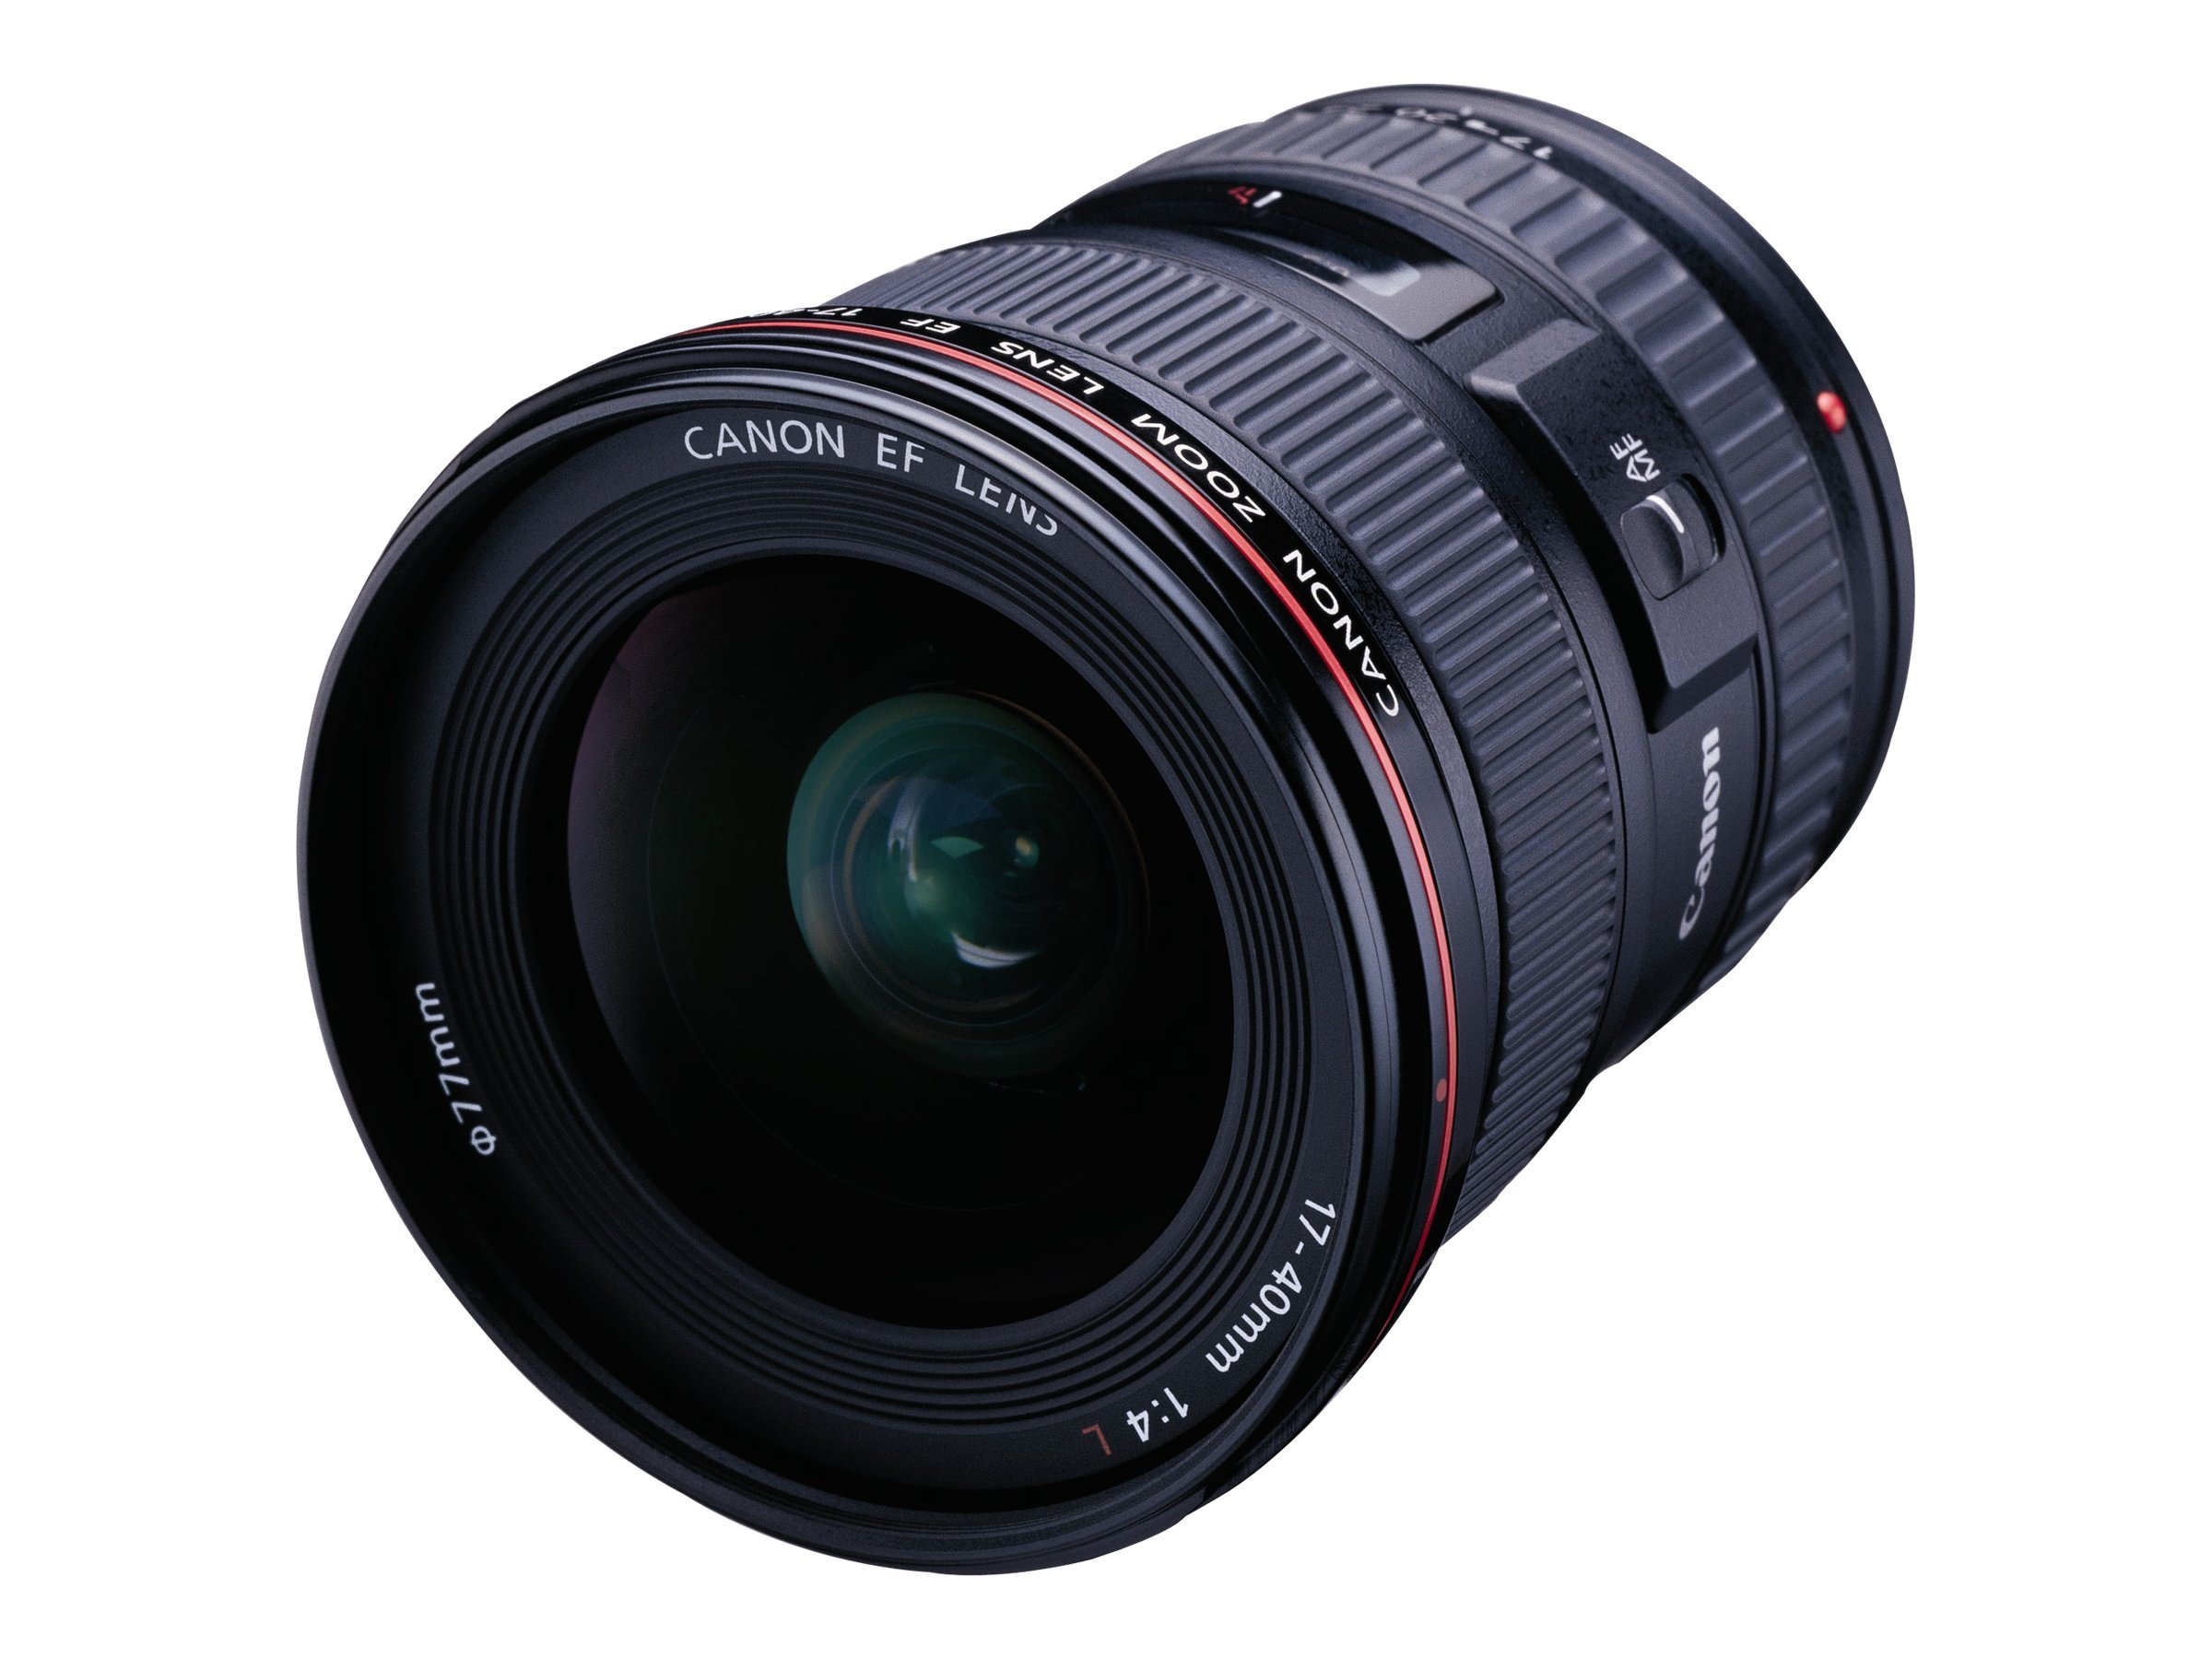 Canon EF - Weitwinkel-Zoom-Objektiv - 17 mm - 40 mm - f/4.0 L USM - Canon EF